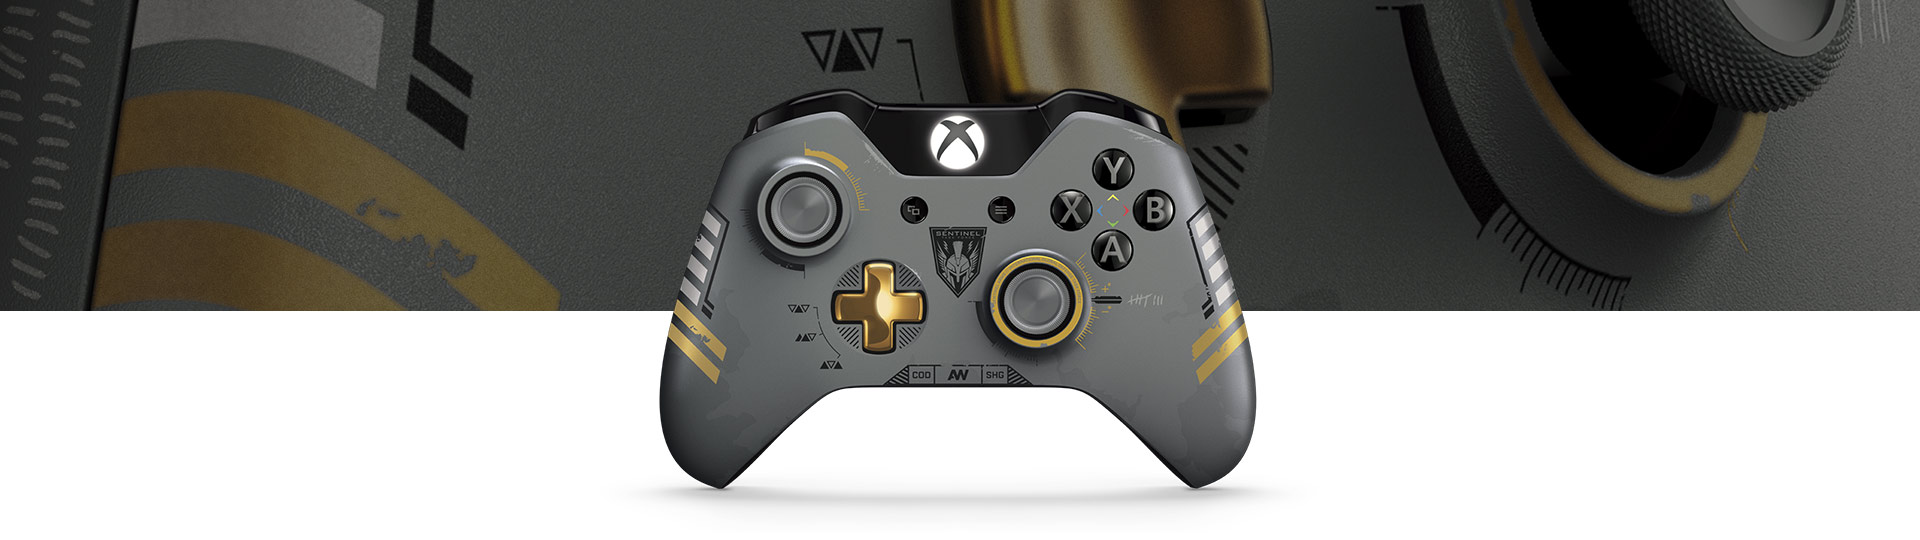 Call of Duty Advanced Warfare-kontroller